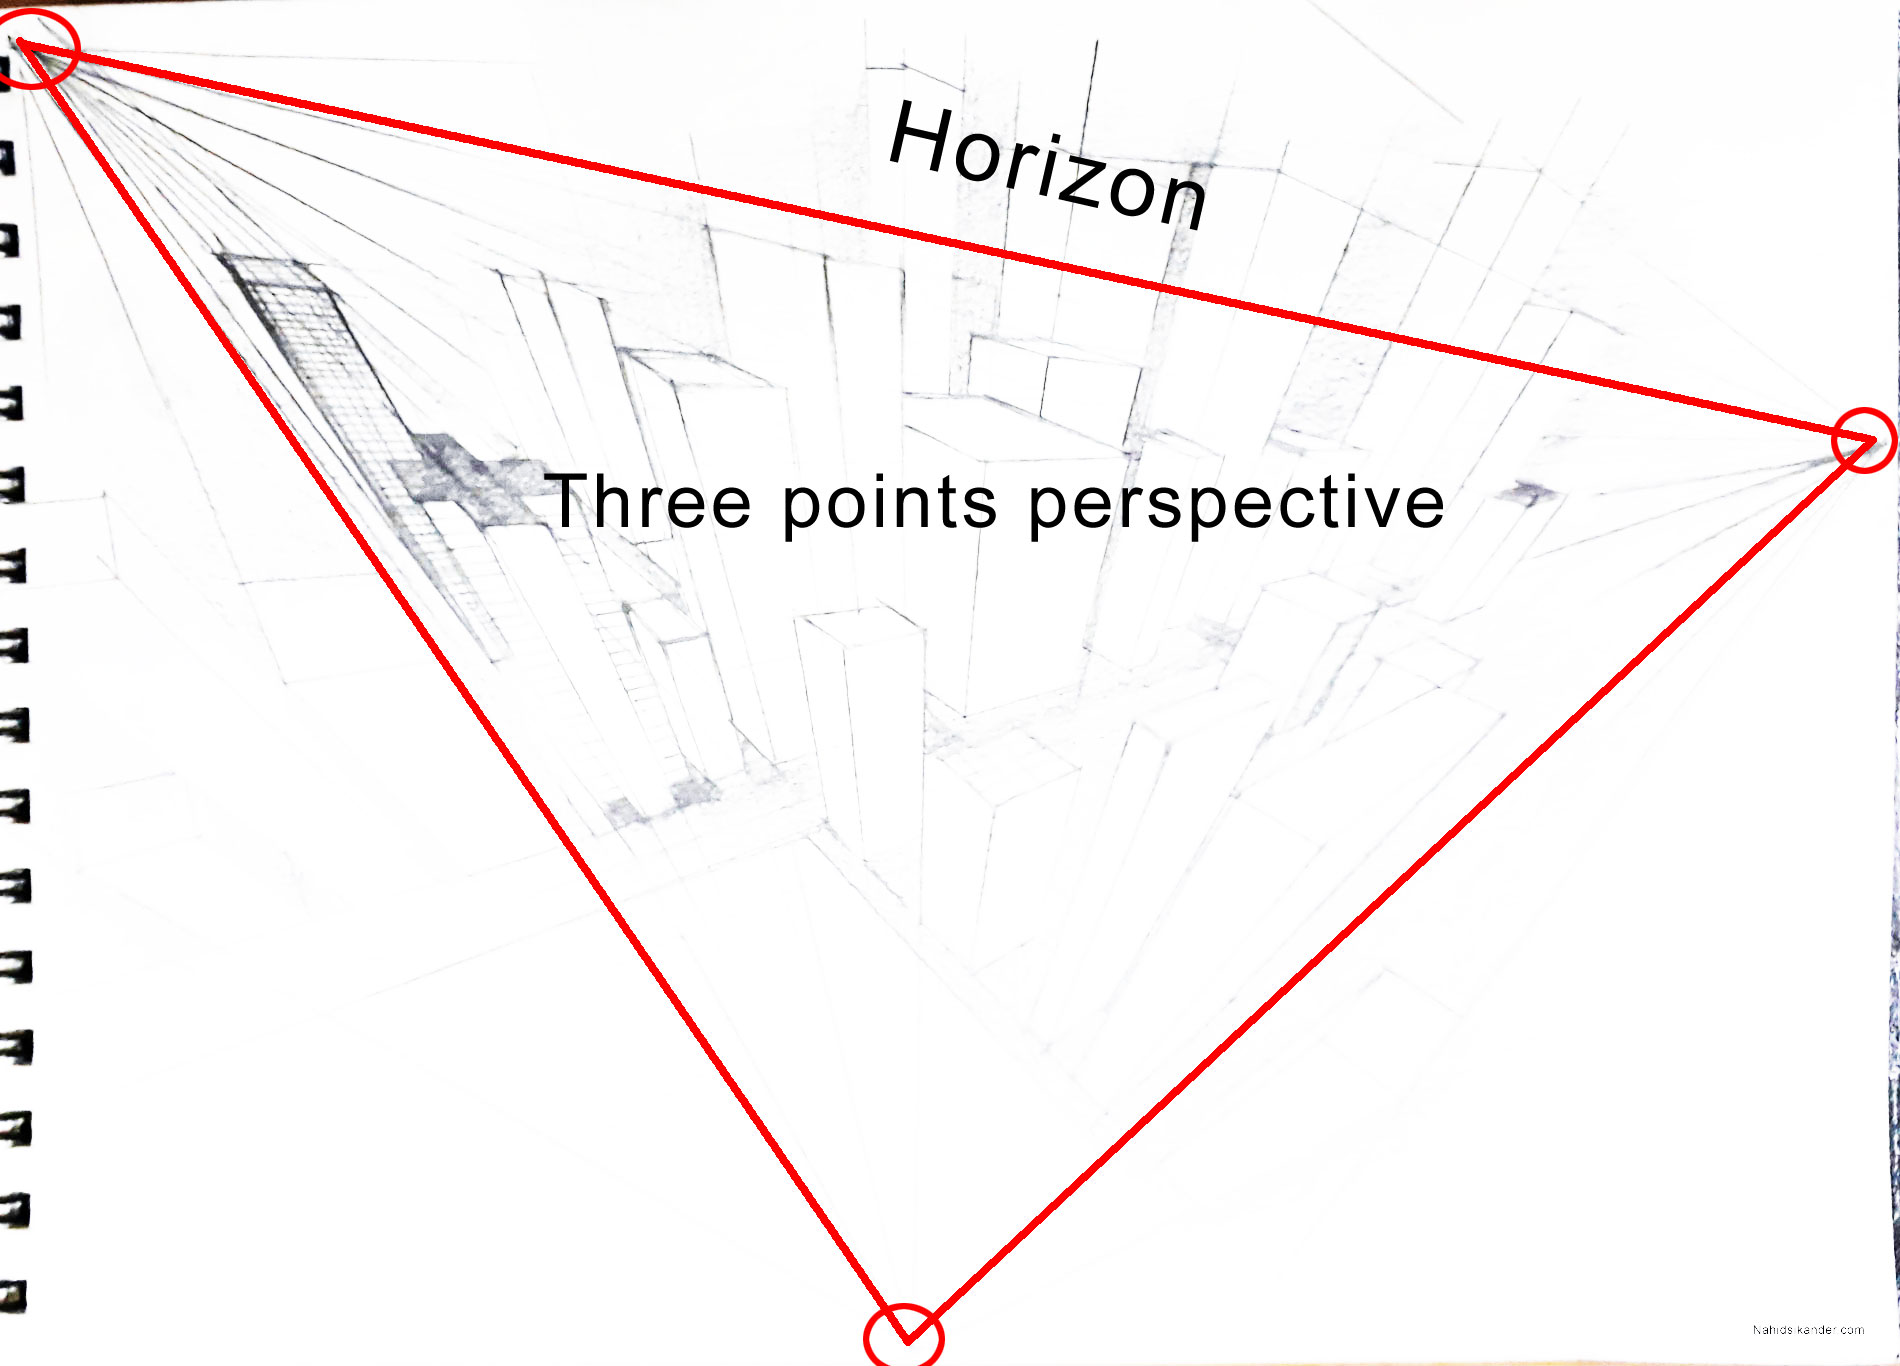 three points perspective, draw vanishing points and horizon line